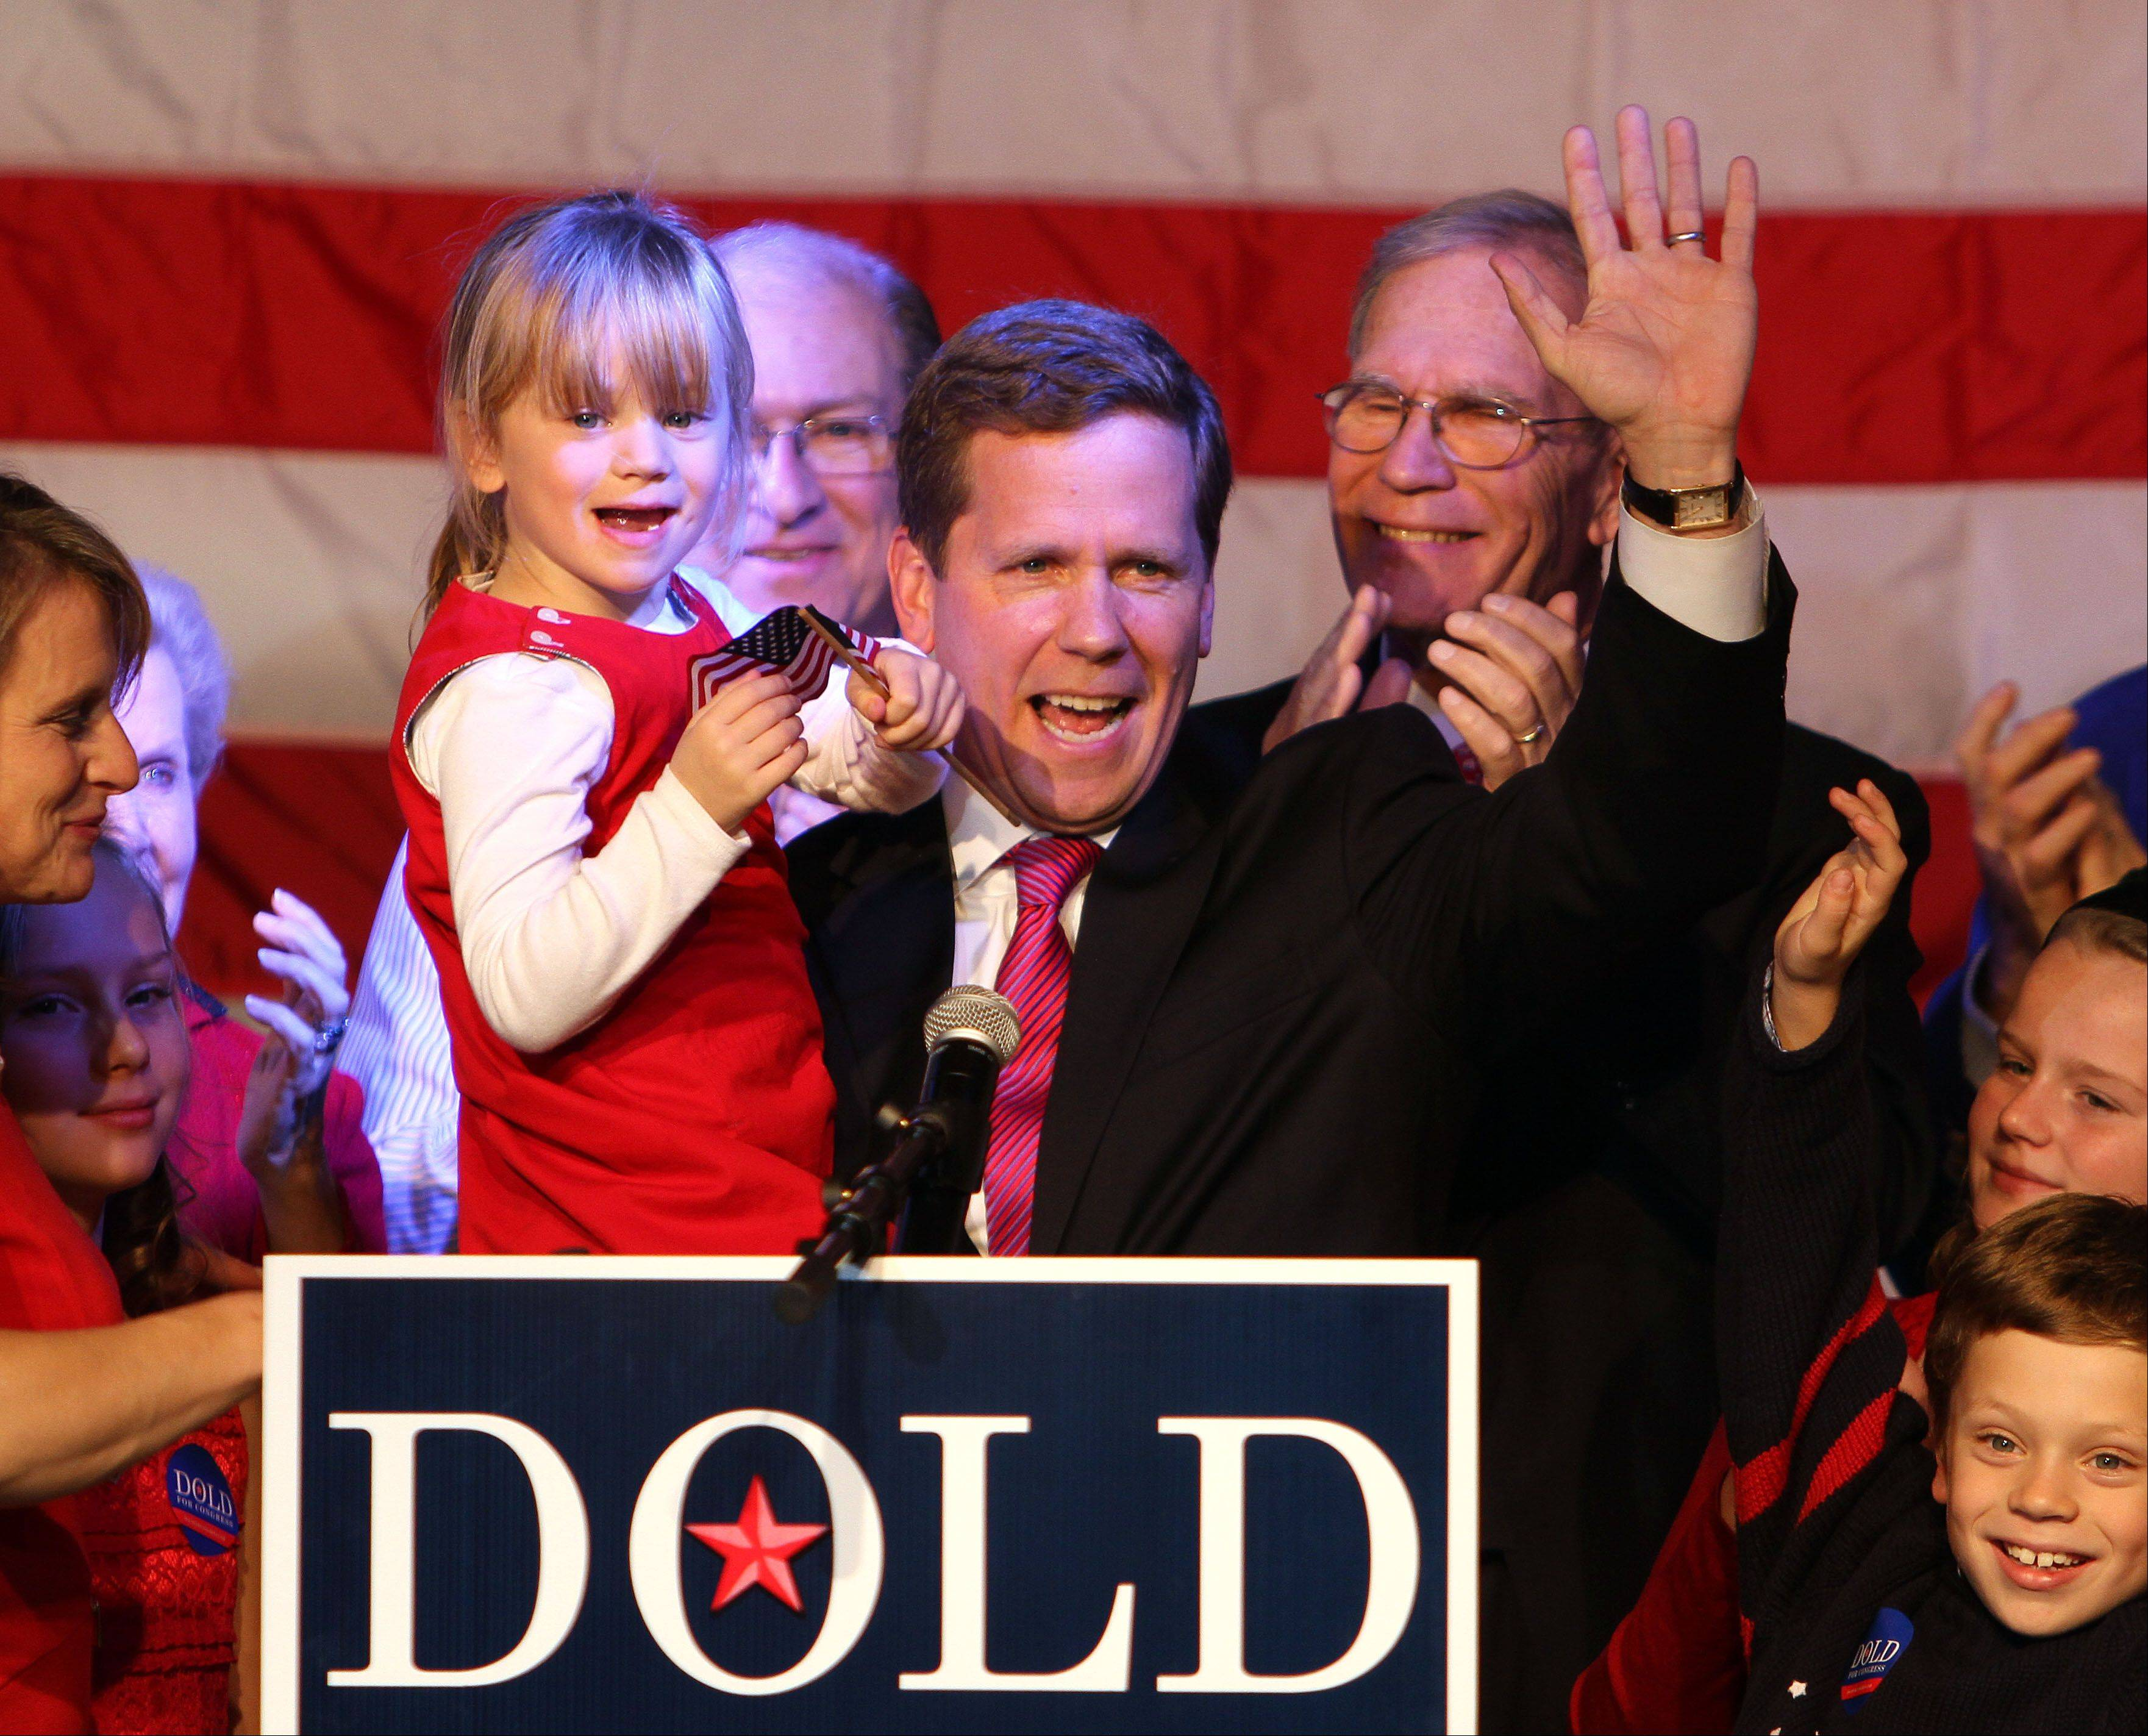 Republican 10th Congressional candidate Robert Dold holds his daughter Honor after losing to Brad Schneider at Viper Alley in Lincolnshire Tuesday night.